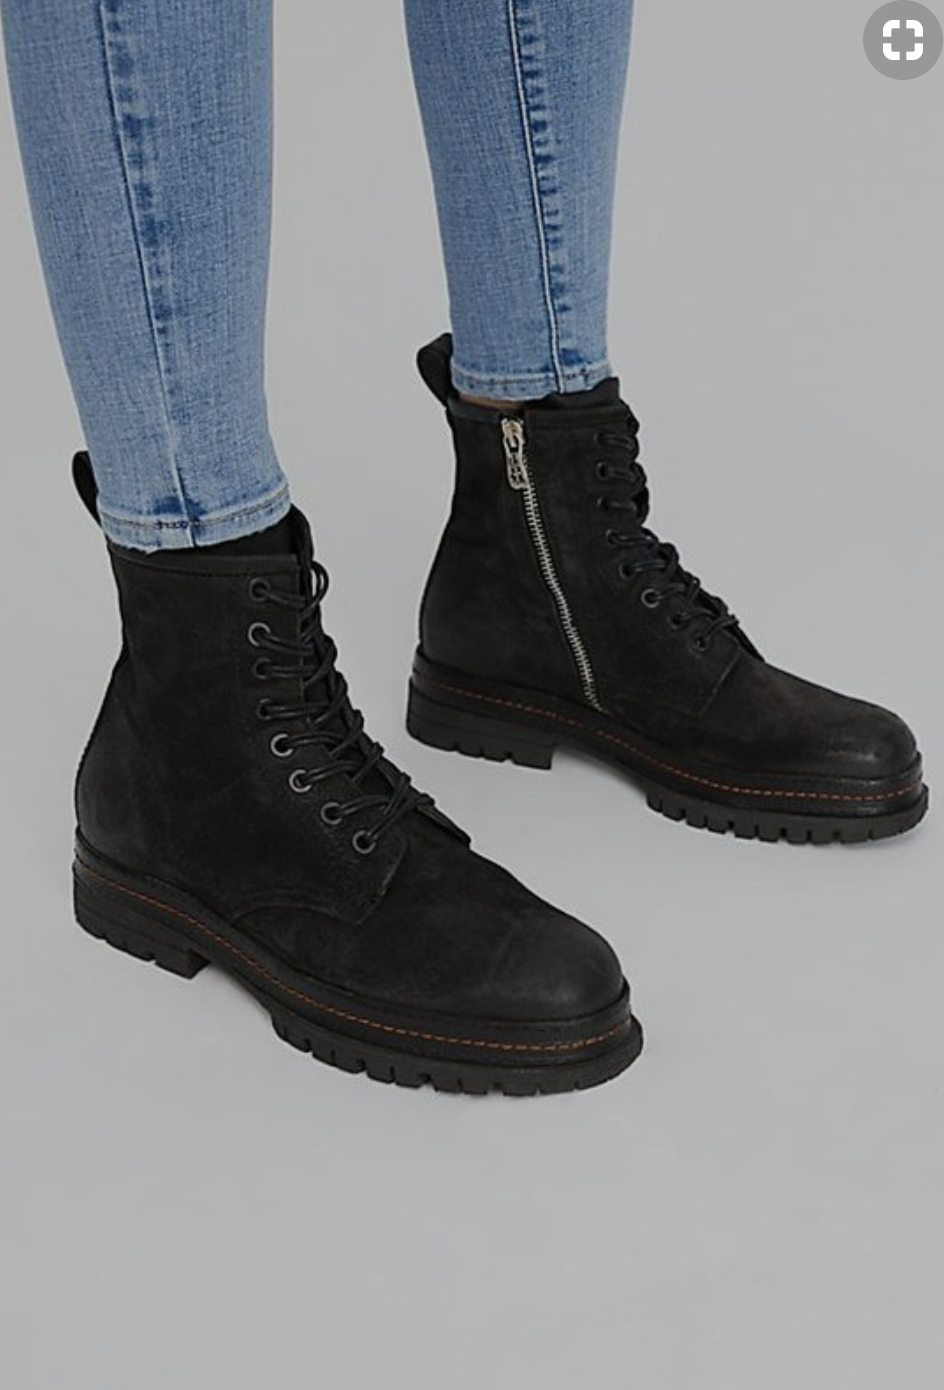 I've always loved a kickass pair of biker boots. I love the sole on these.